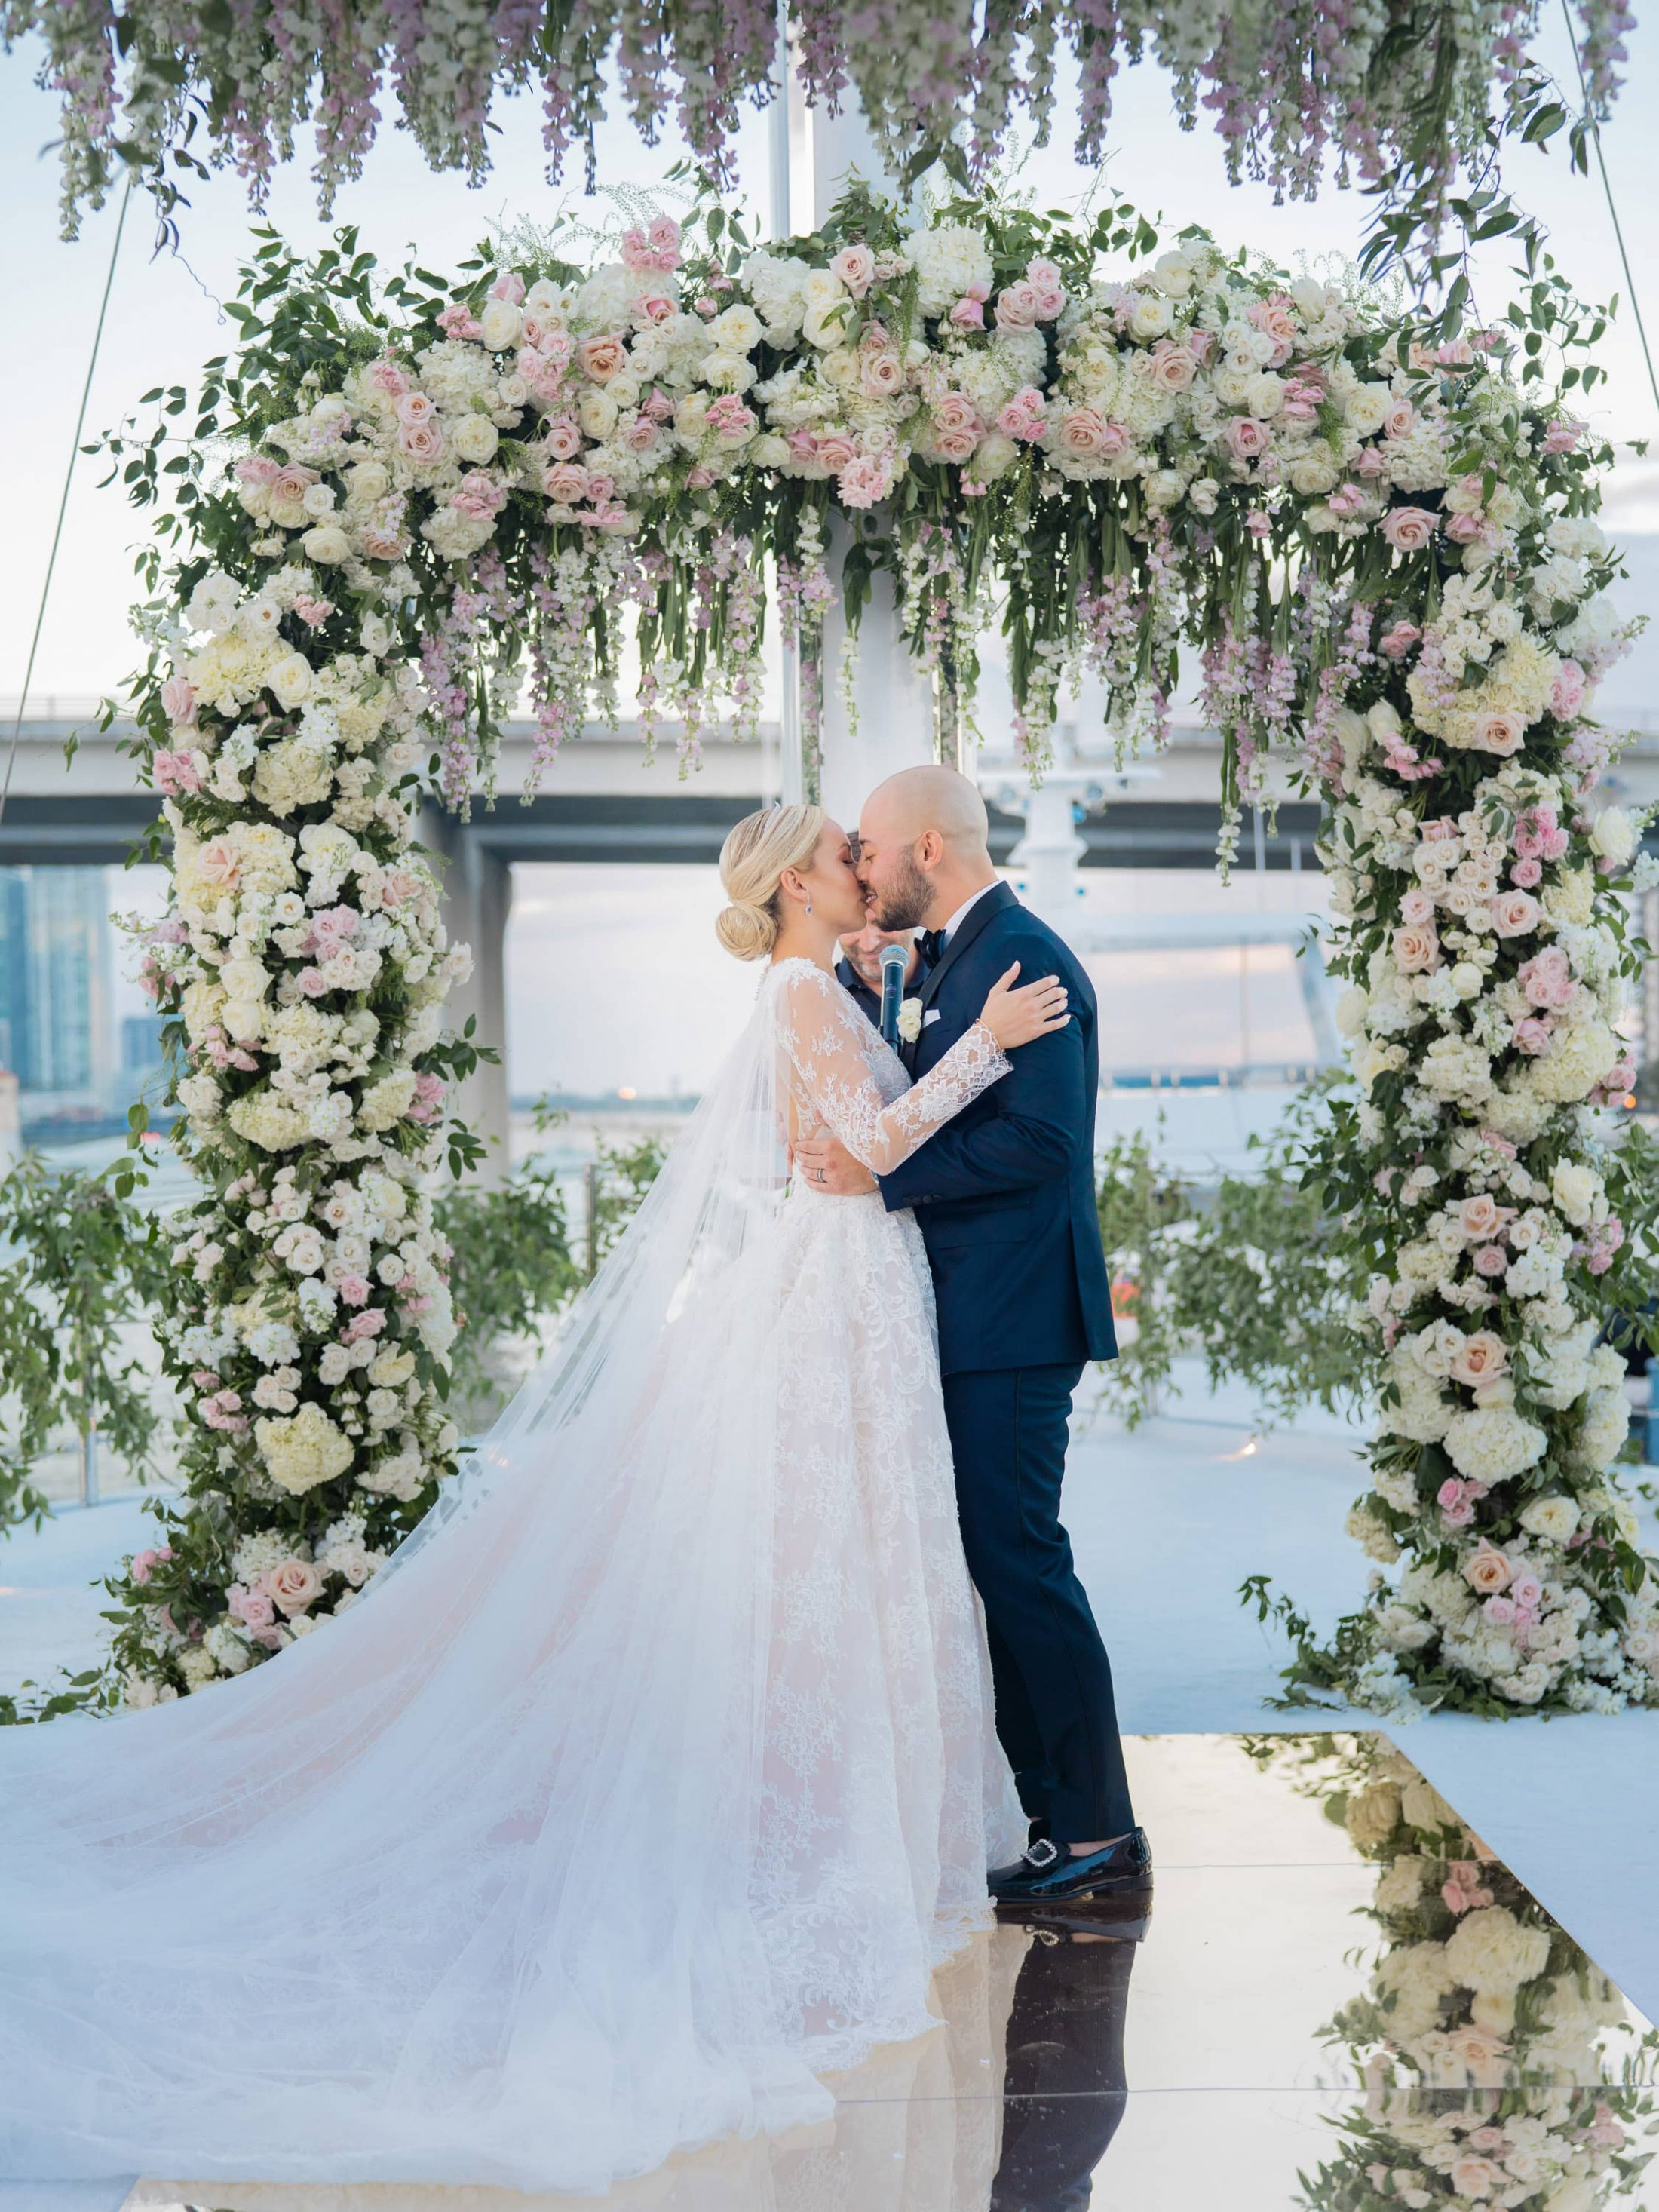 Bride and groom kiss at ceremony at this Miami yacht wedding | Photo by Corbin Gurkin